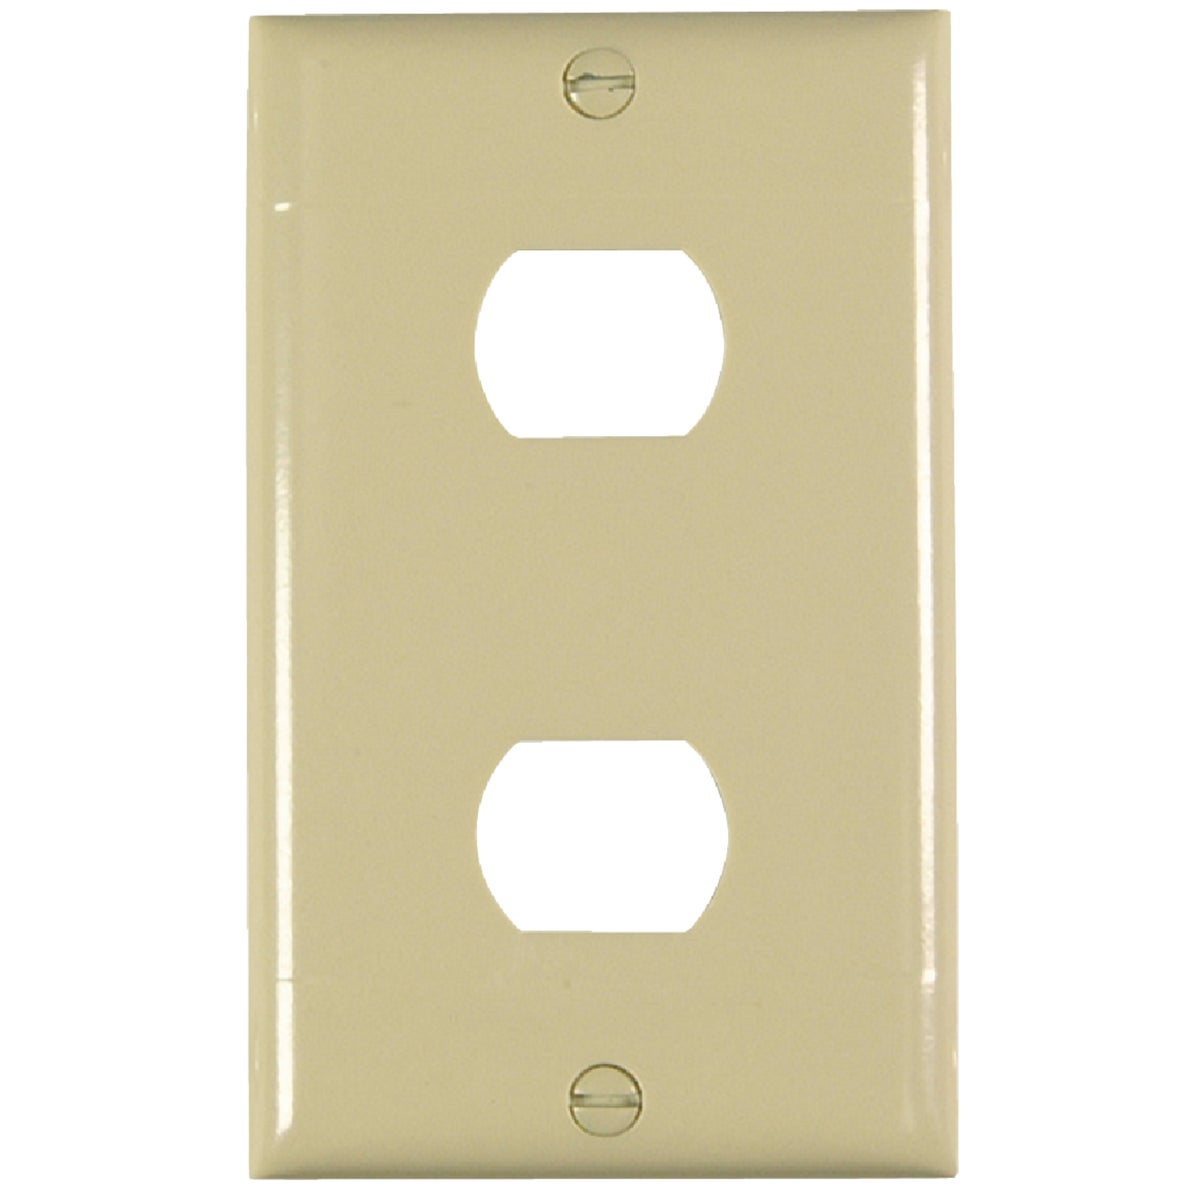 IV RIBBED WALL PLATE - K2-I by Pass Seymour Legrand